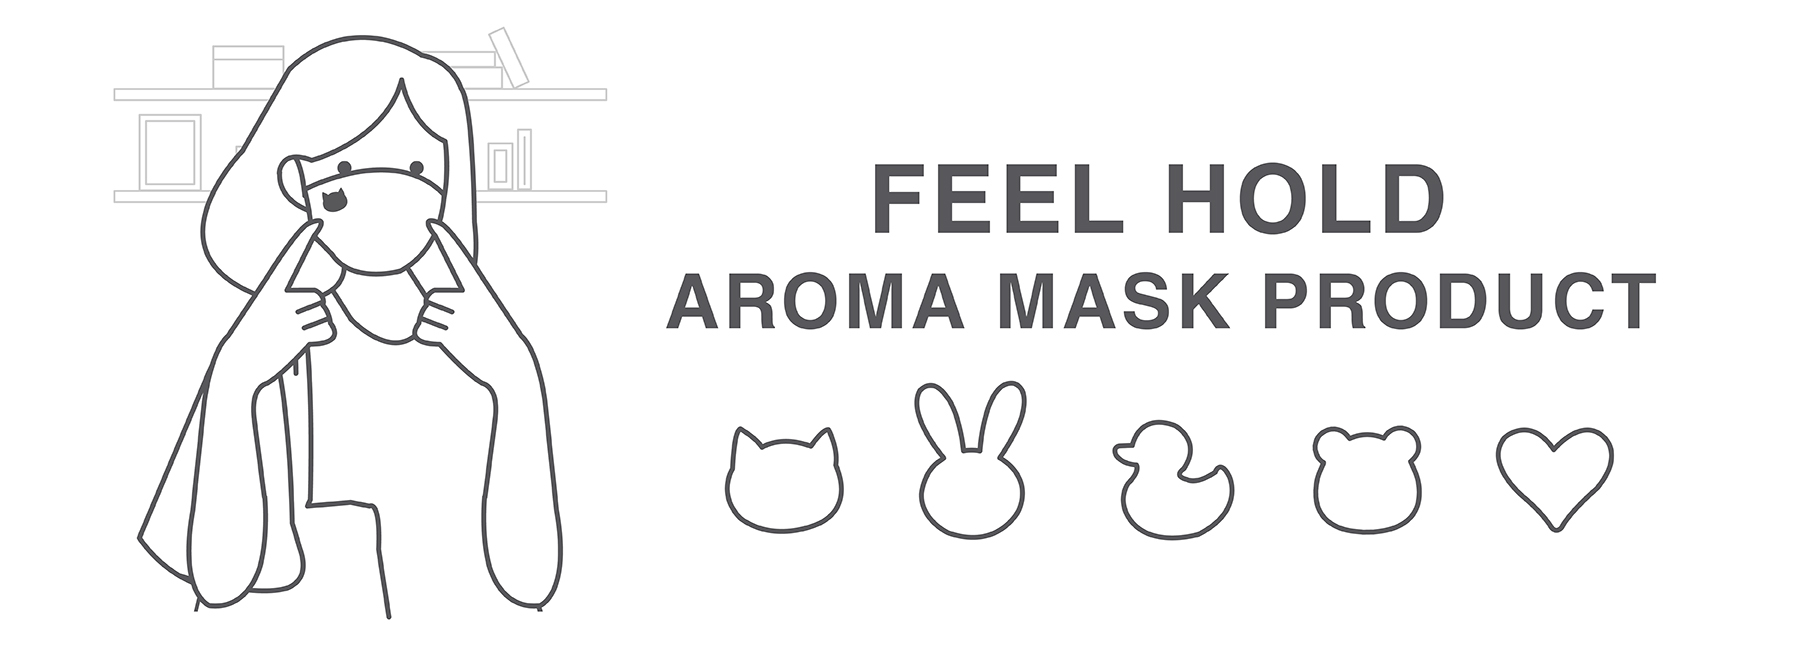 Aroma mask sticker feel hold good scent